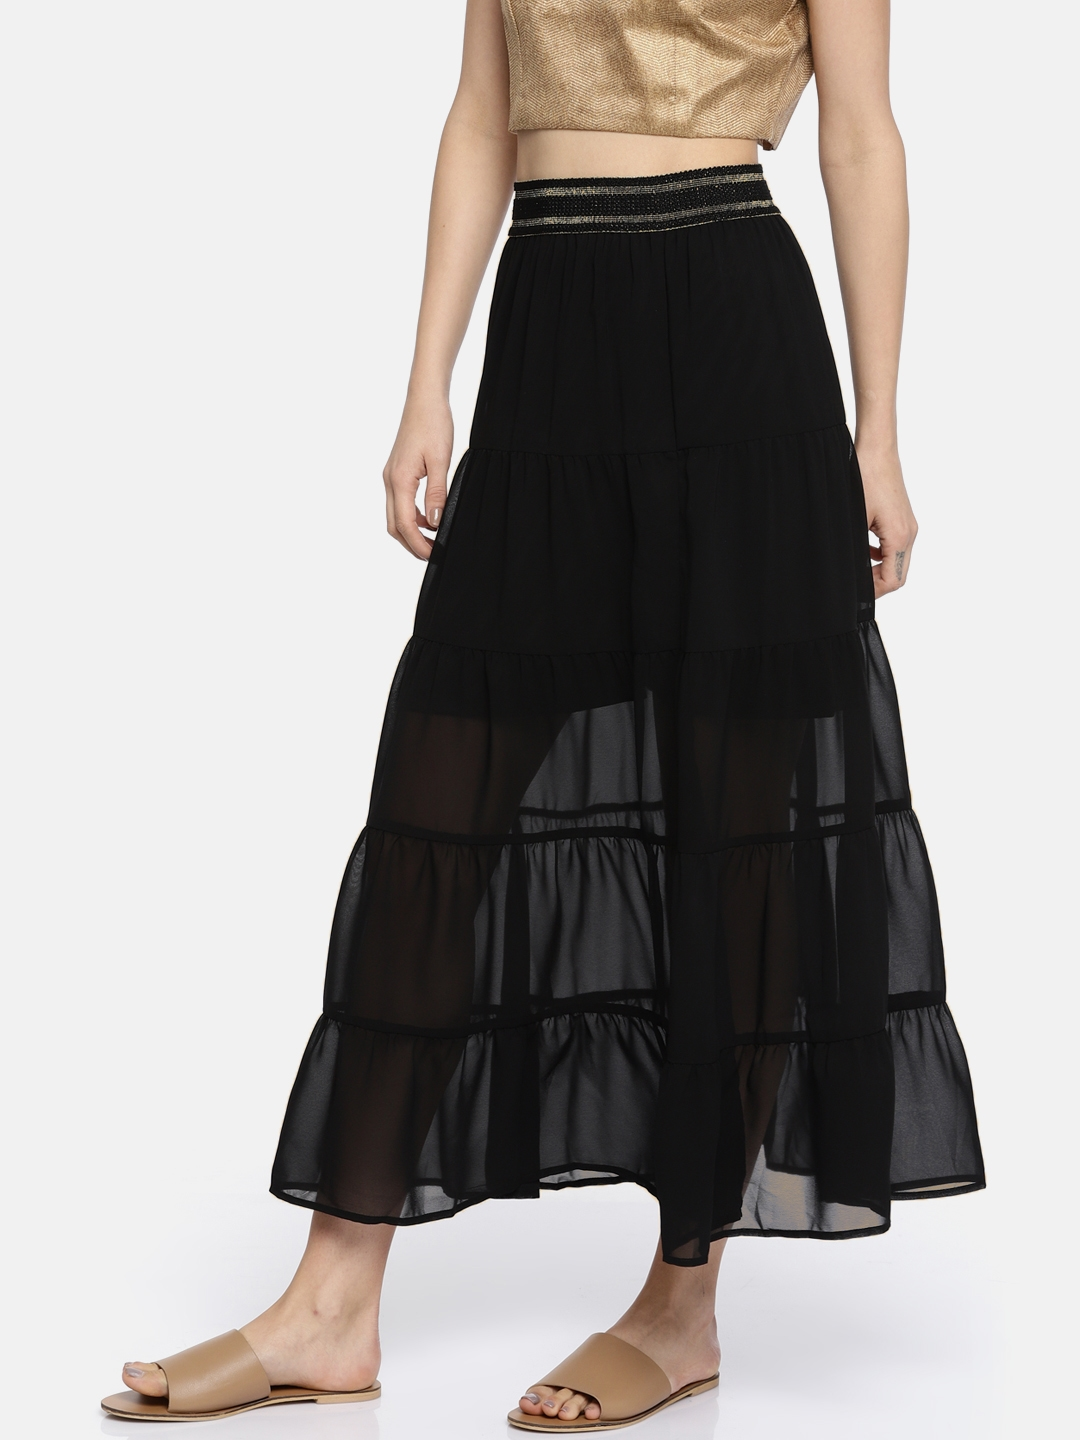 edfc1aa21d471f Buy Madame Black Semi Sheer A Line Maxi Skirt - Skirts for Women ...